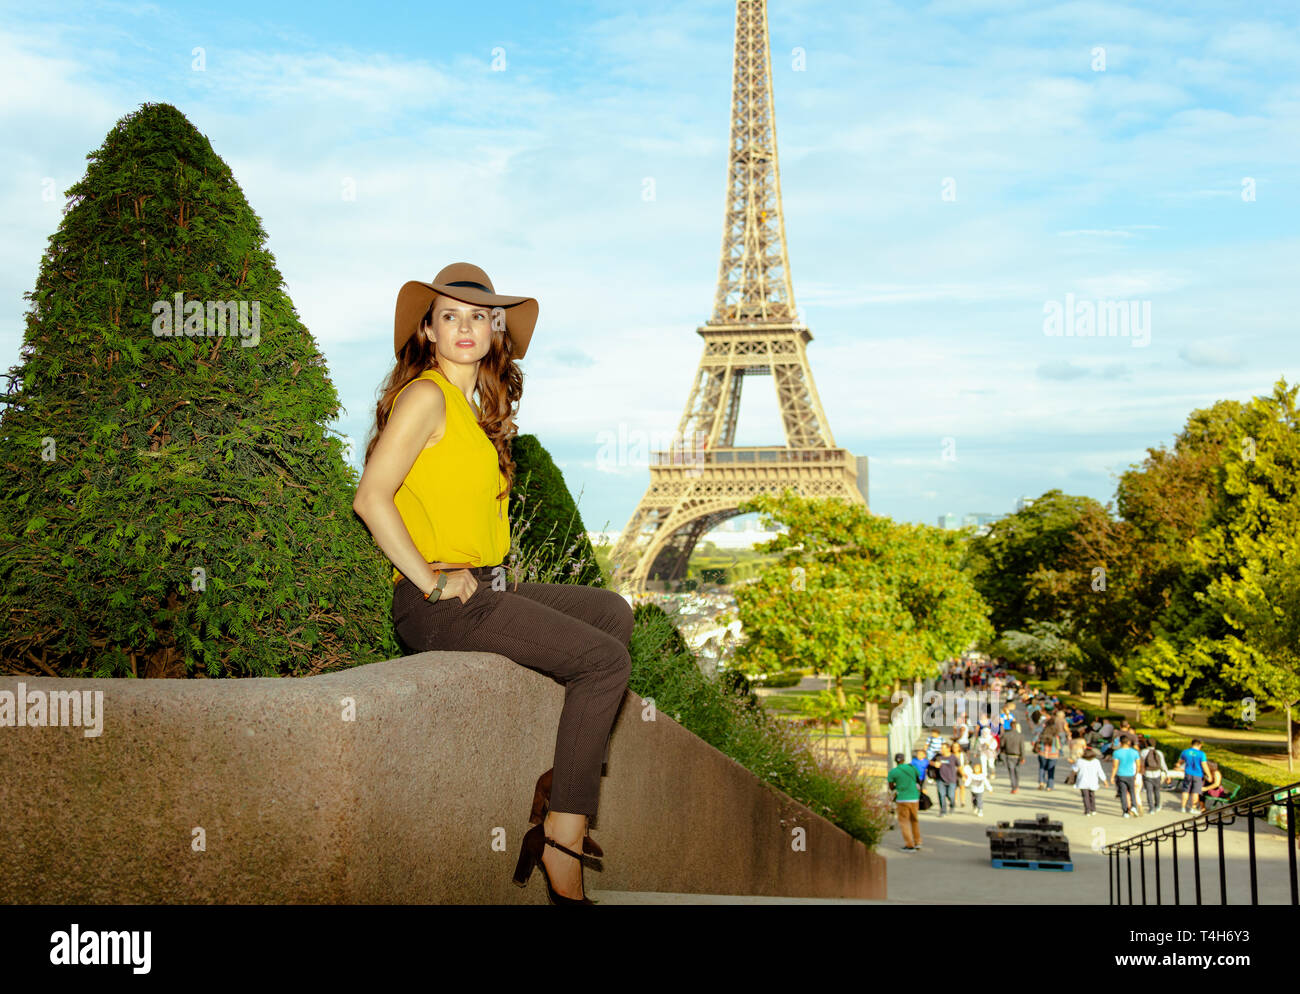 Full length portrait of pensive modern woman in yellow blouse and hat not far from Eiffel tower in Paris, France looking into the distance while sitti - Stock Image